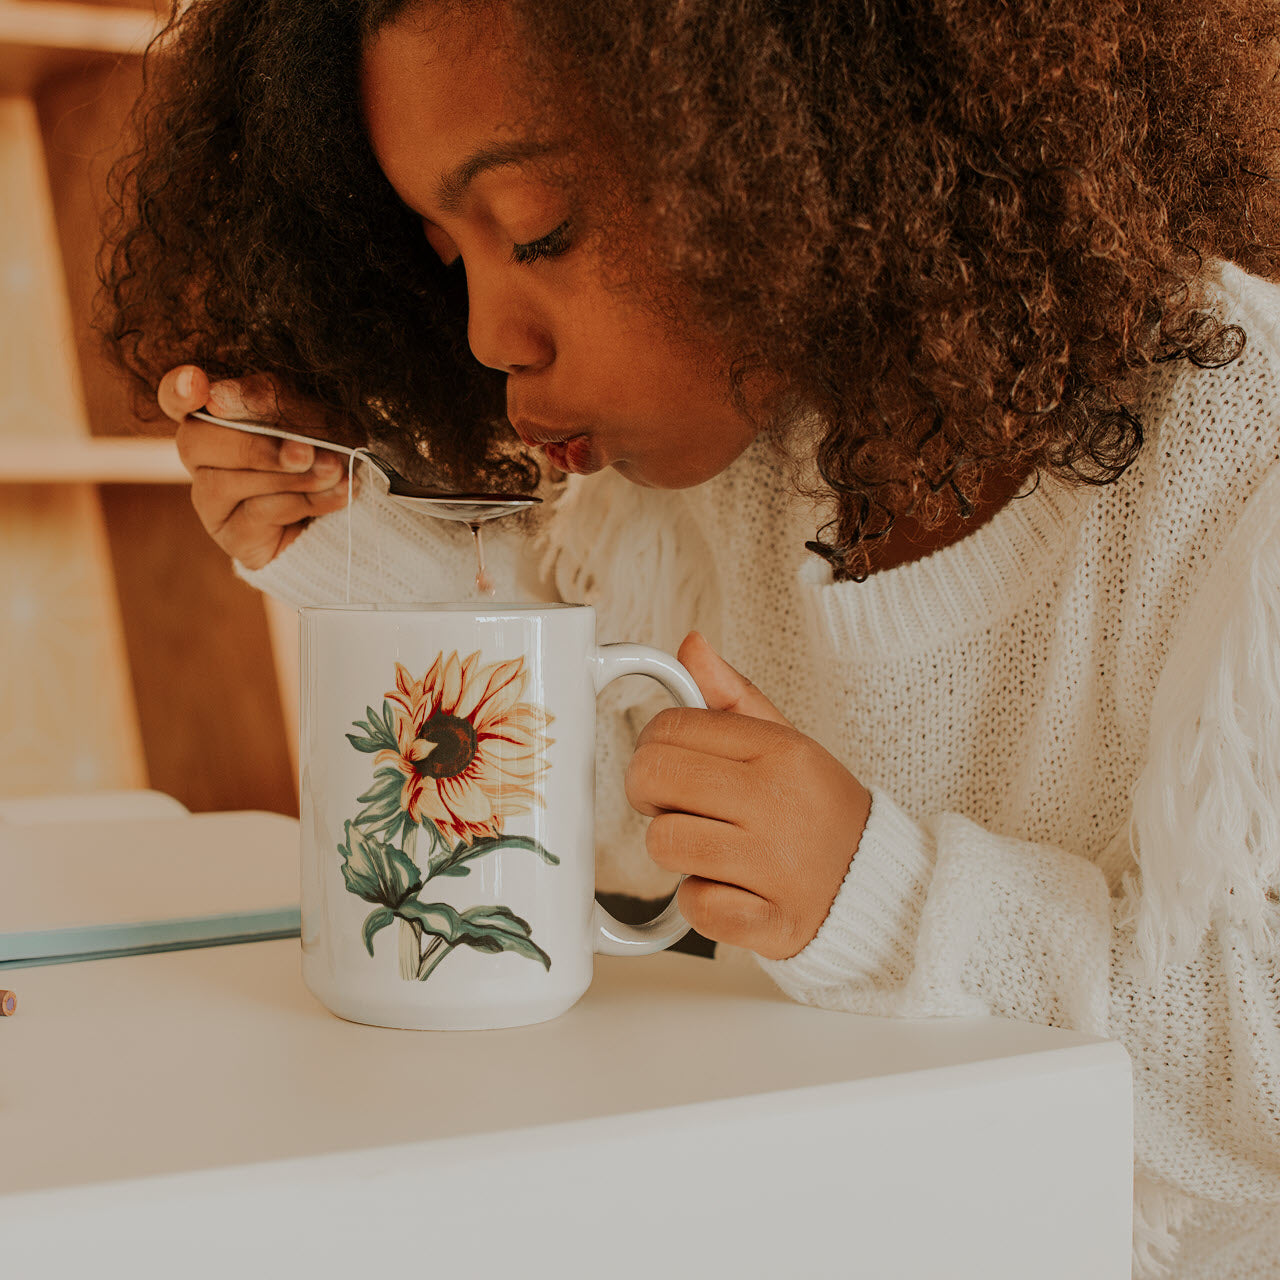 woman drinking out of a mug with a sunflower on it